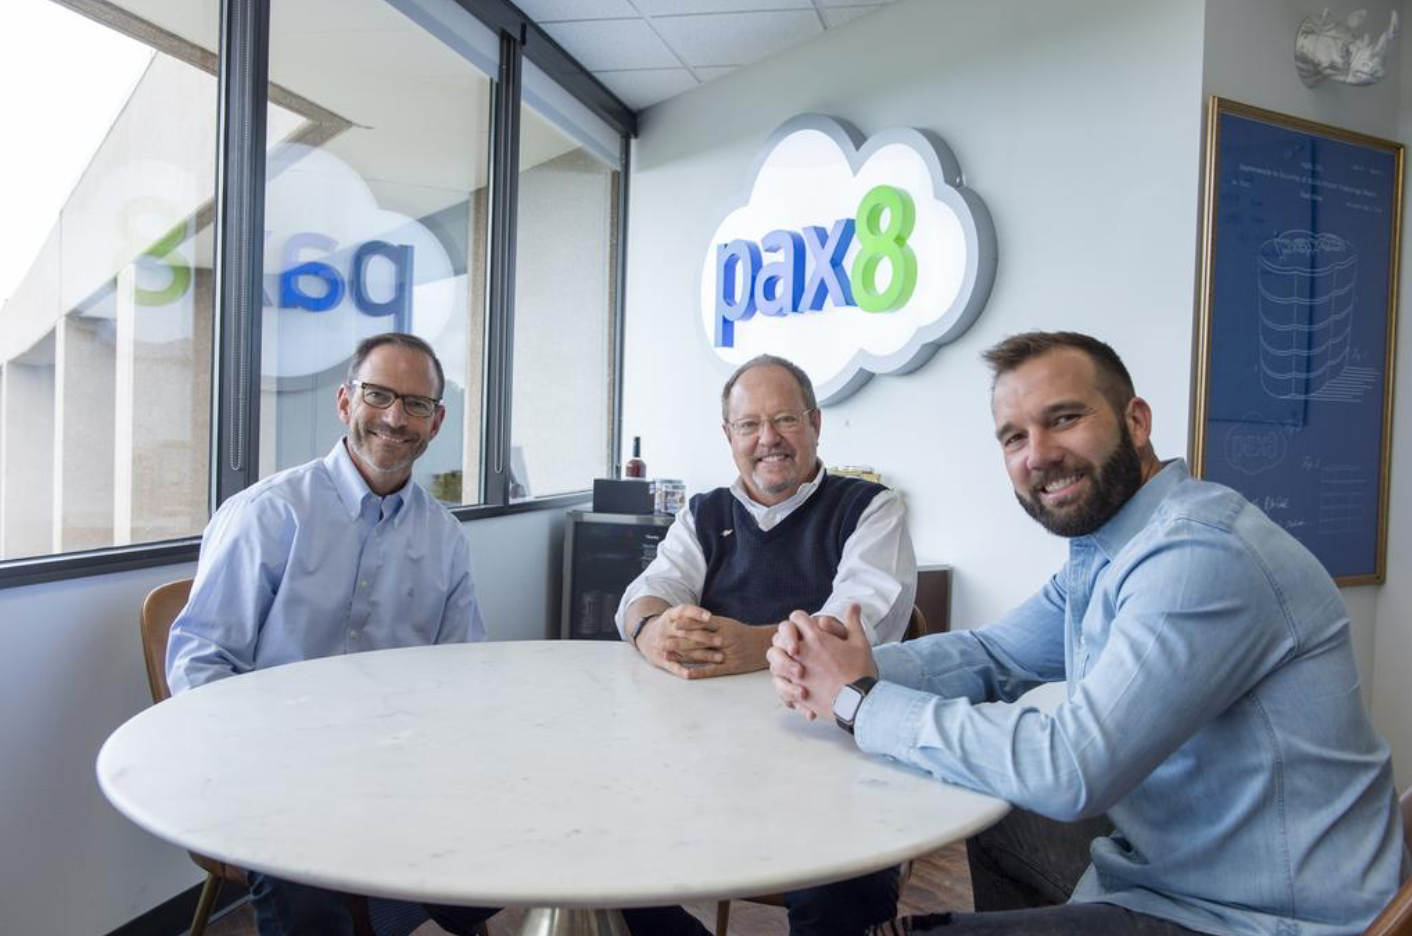 Denver Business Journal: Fast 50 Large No. 1: At Pax8, people come first for fast-growth cloud solutions Image